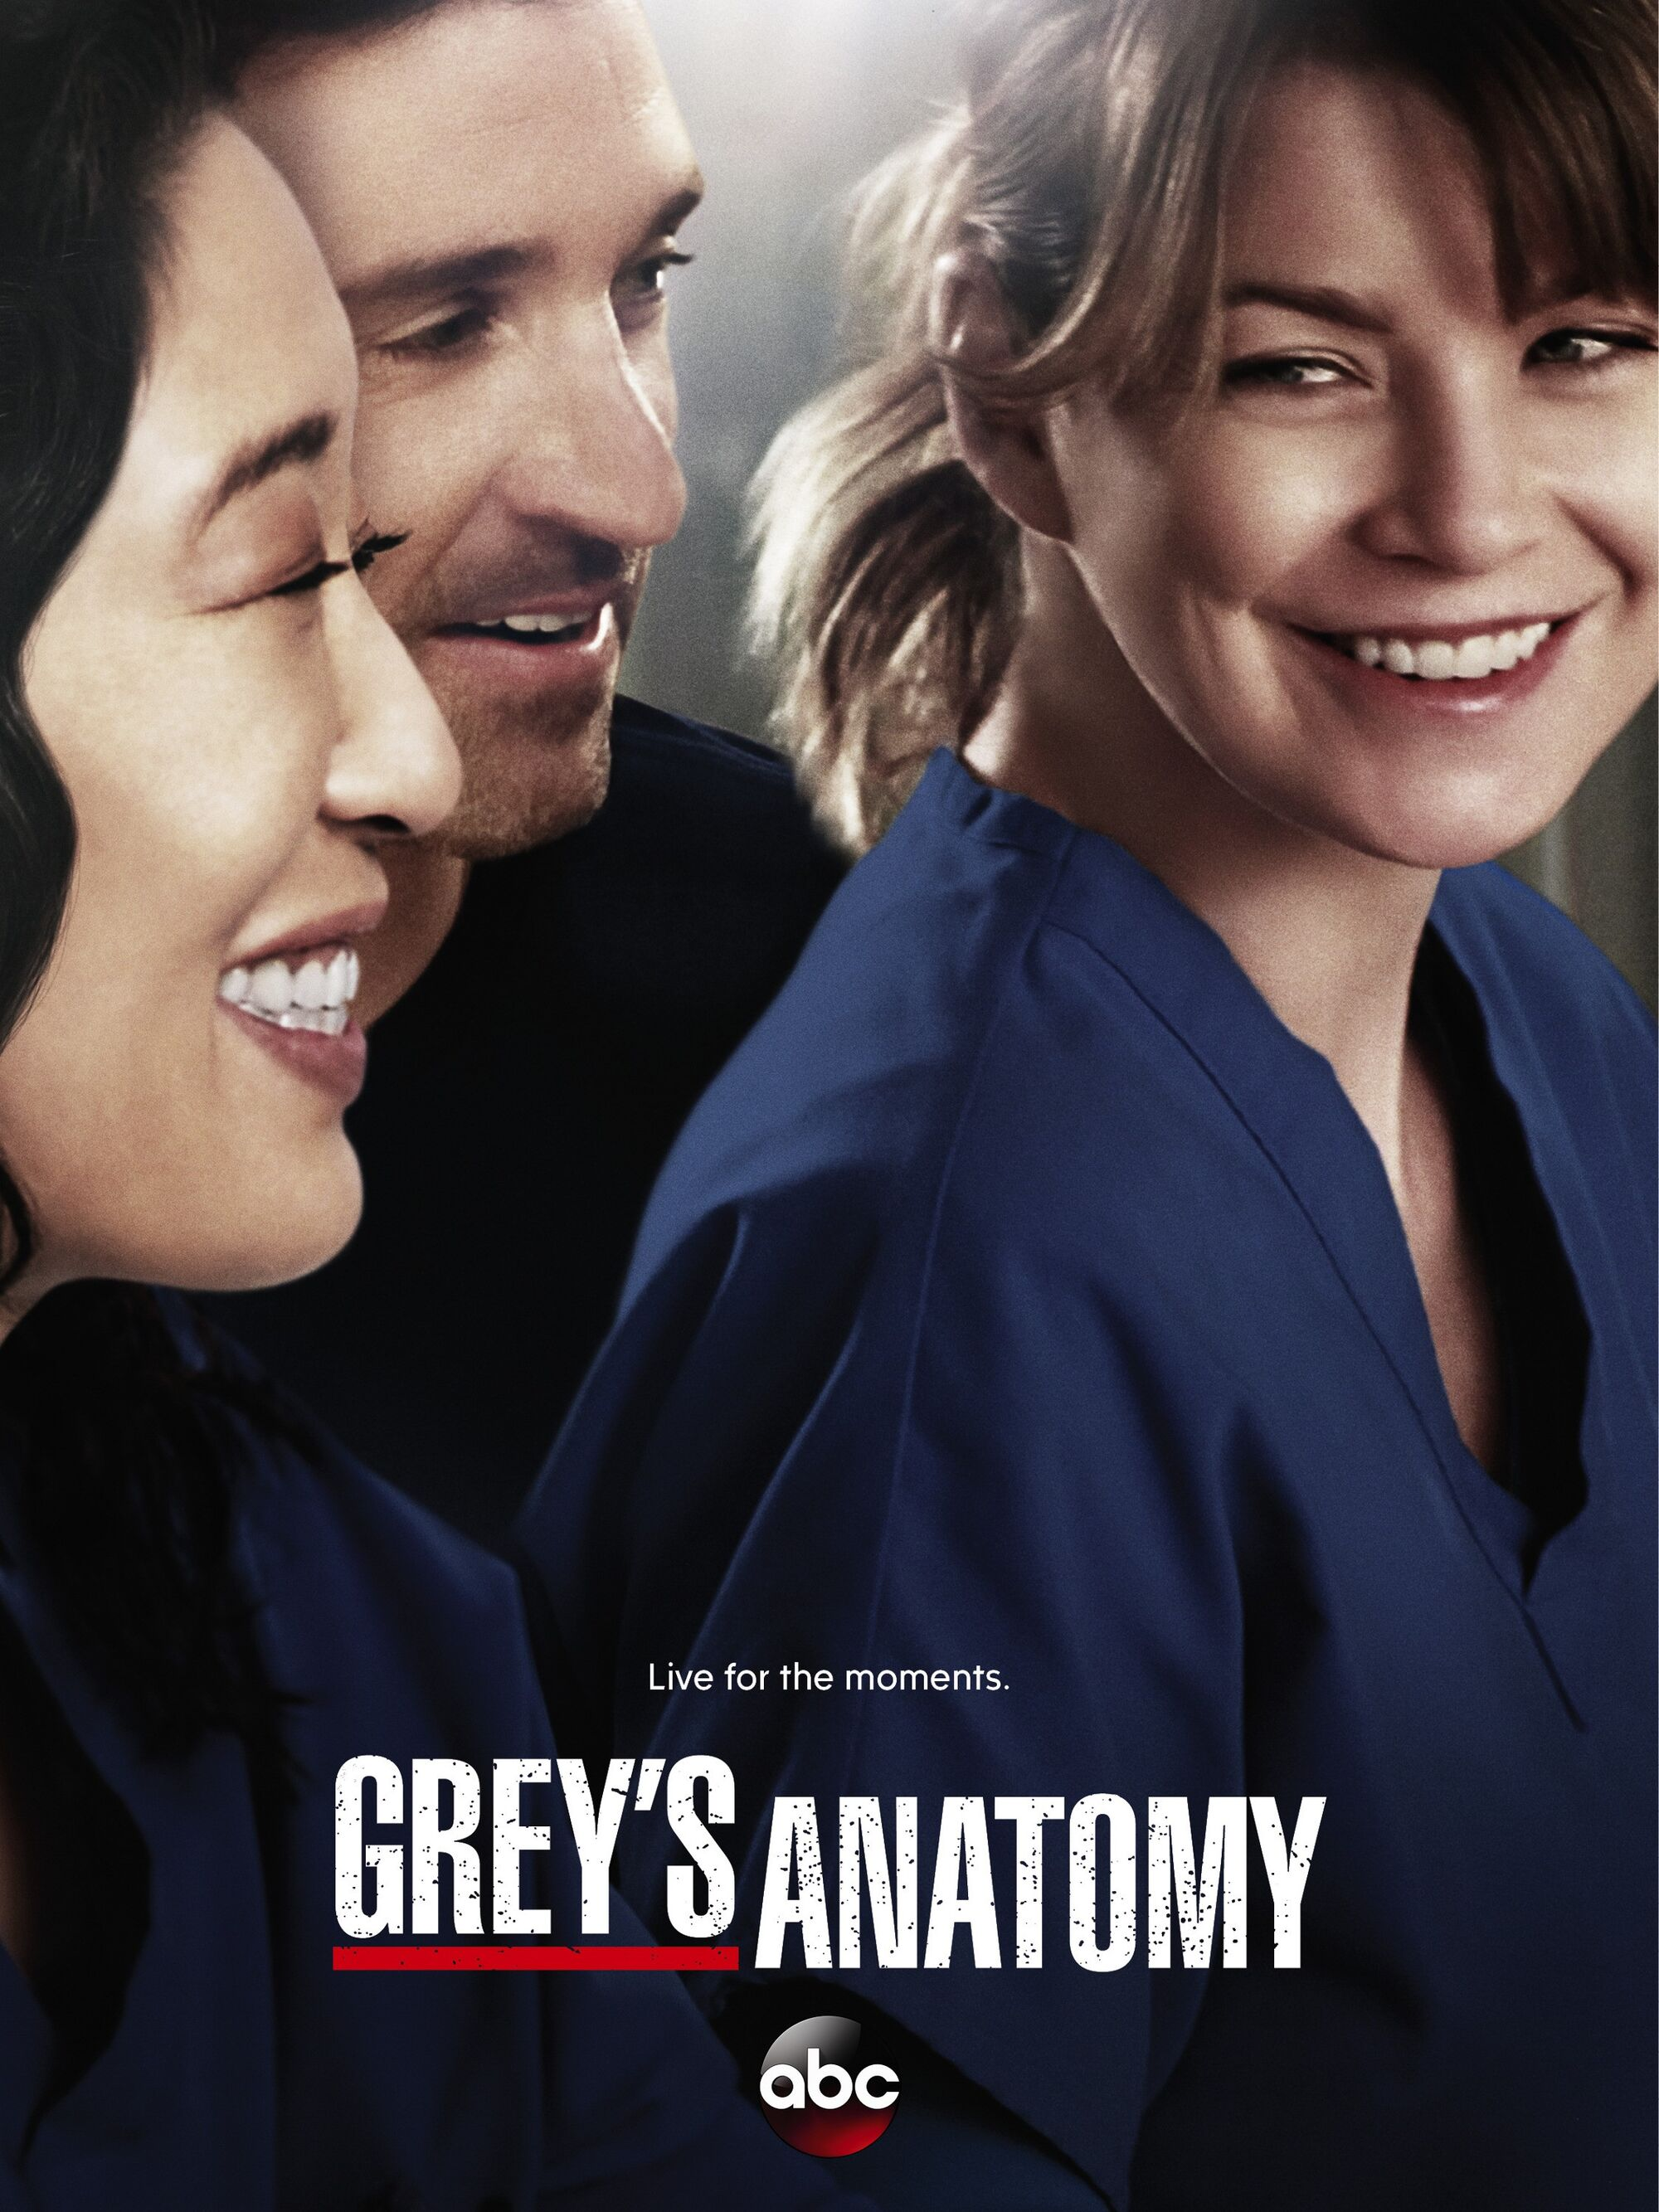 Greys anatomy episode guide wiki 9861146 - 1cashing.info